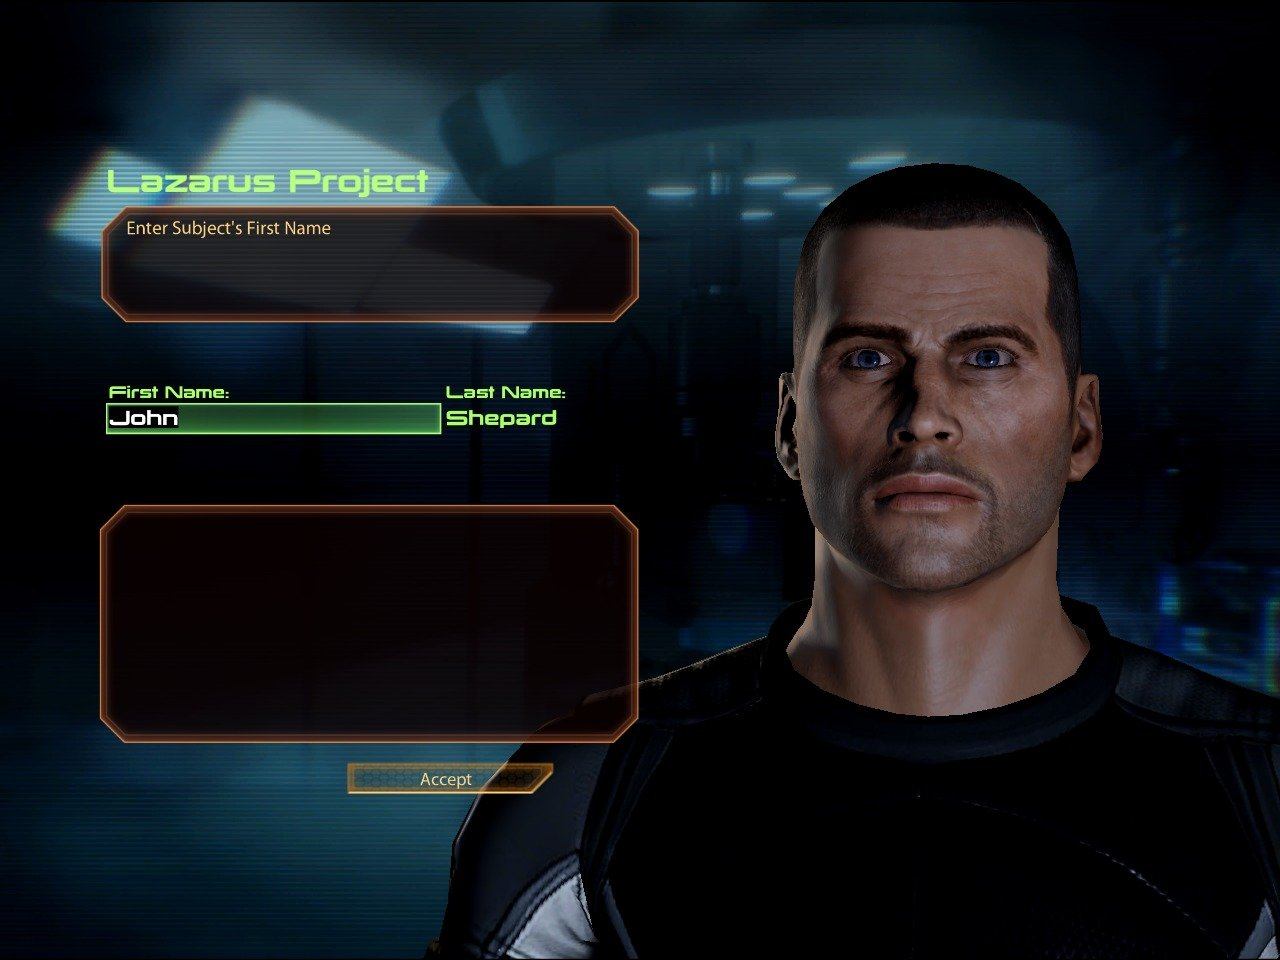 Suggestions for microsofts kinect mass effect 2 male shepard lazarus project character voltagebd Image collections